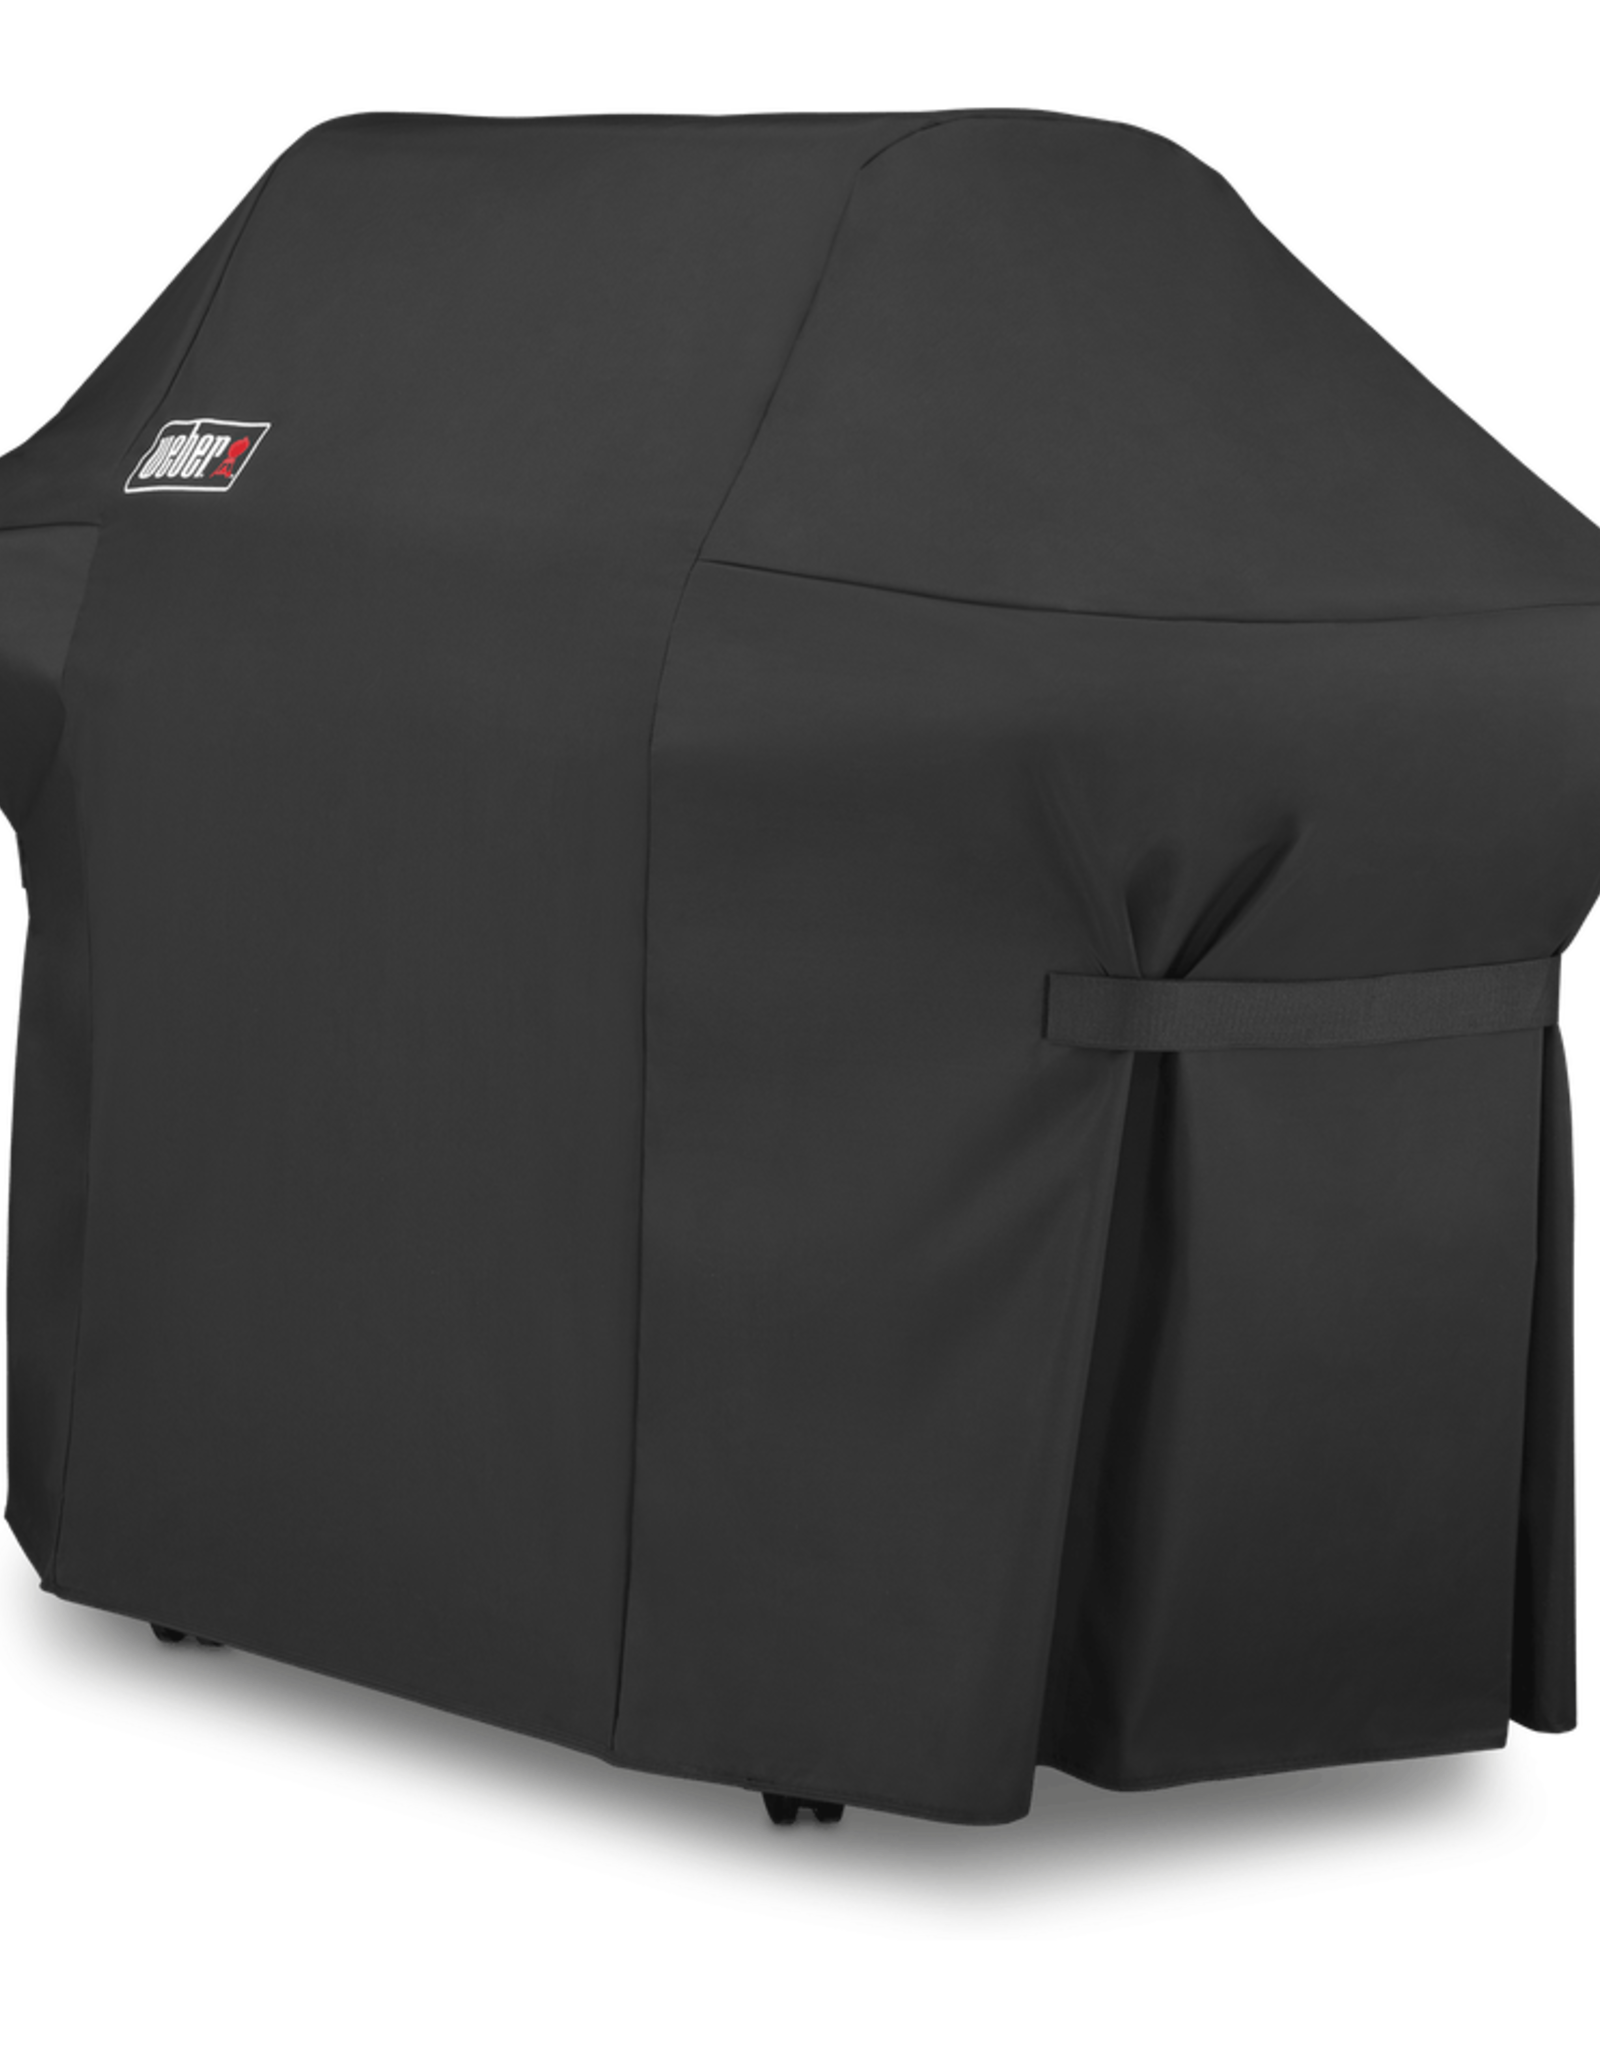 Weber Premium Grill Cover - Fits Summit 400 series